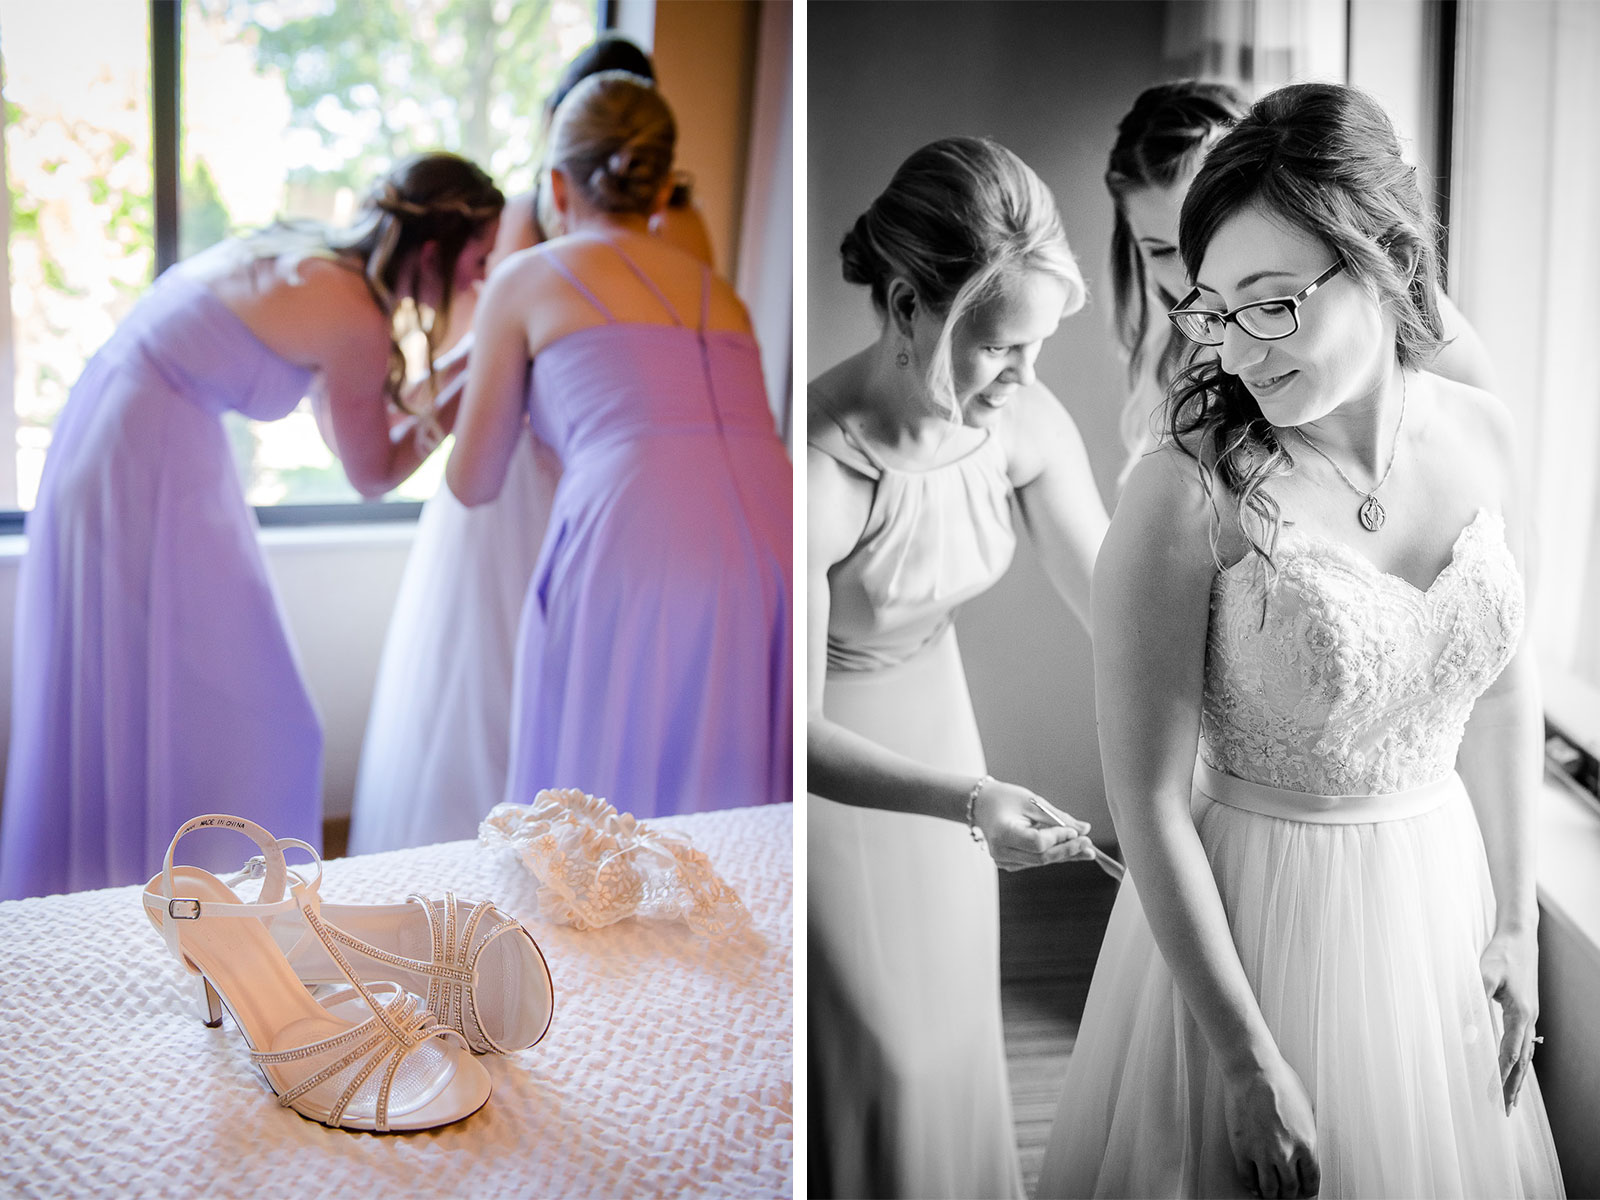 Eric_and_Christy_Photography_Blog_Julie_Adam_Wedding-1-2